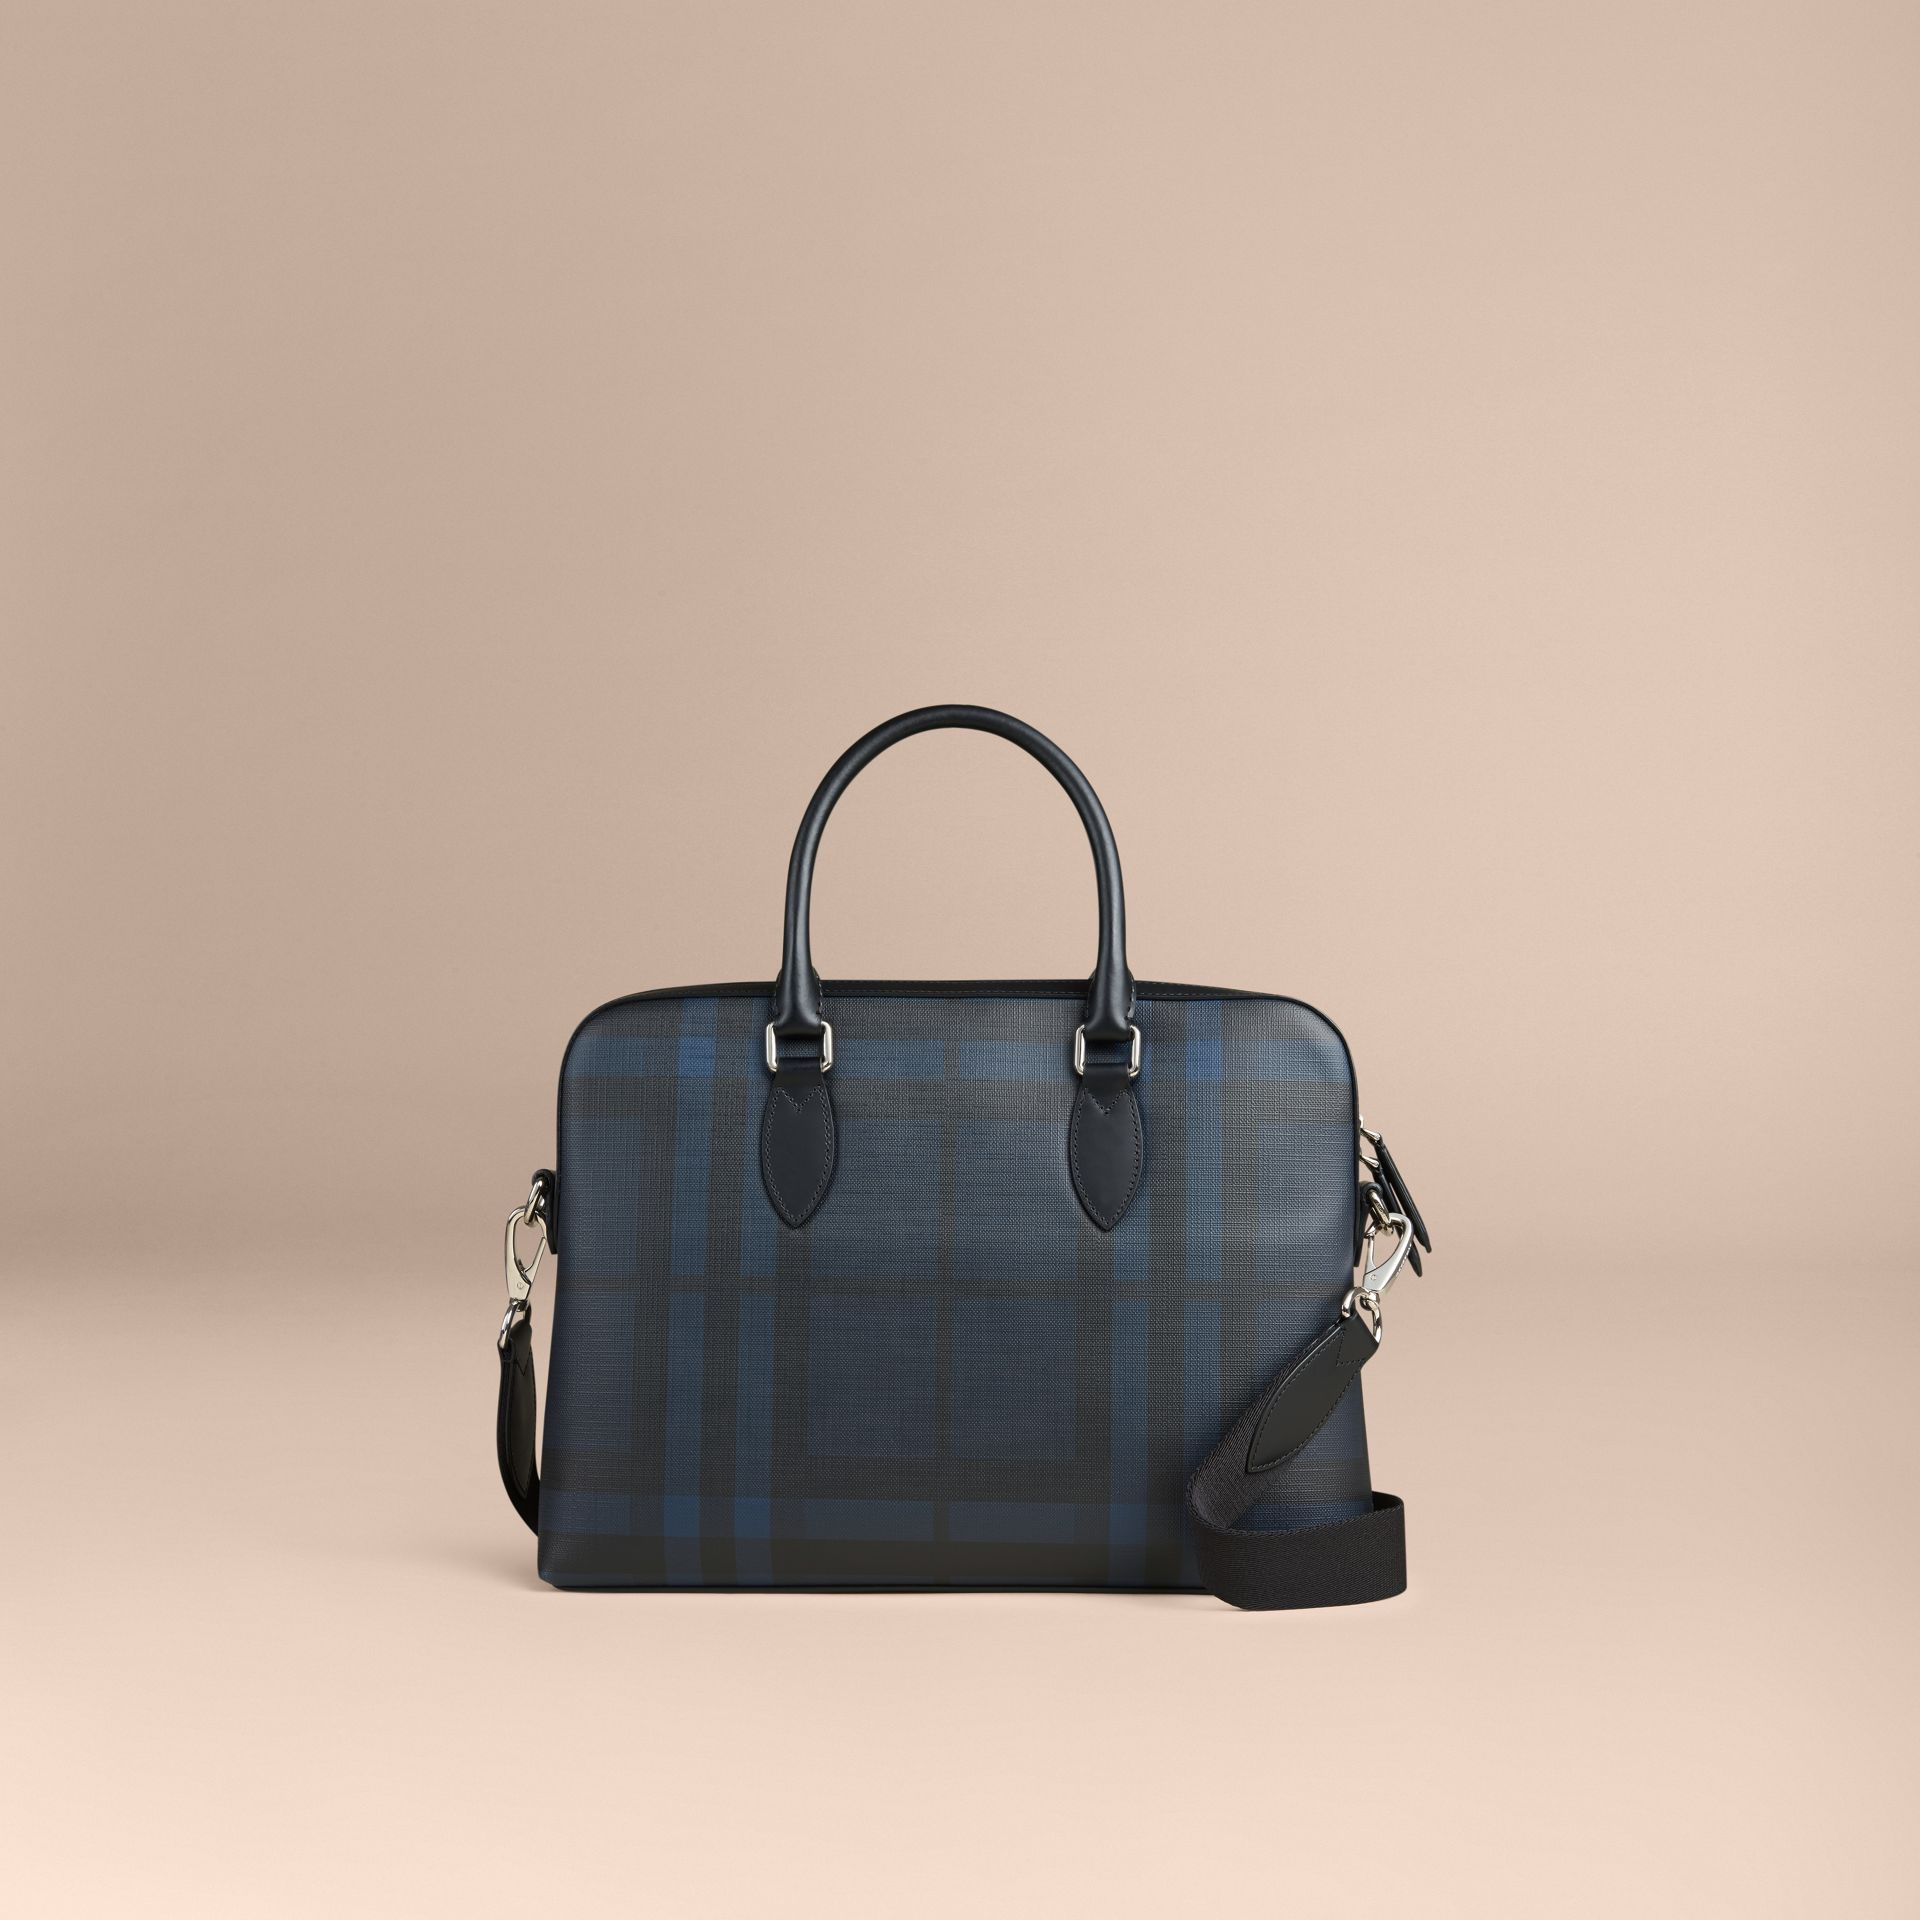 Sac The Barrow à motif London check (Marine/noir) - Homme | Burberry Canada - photo de la galerie 6